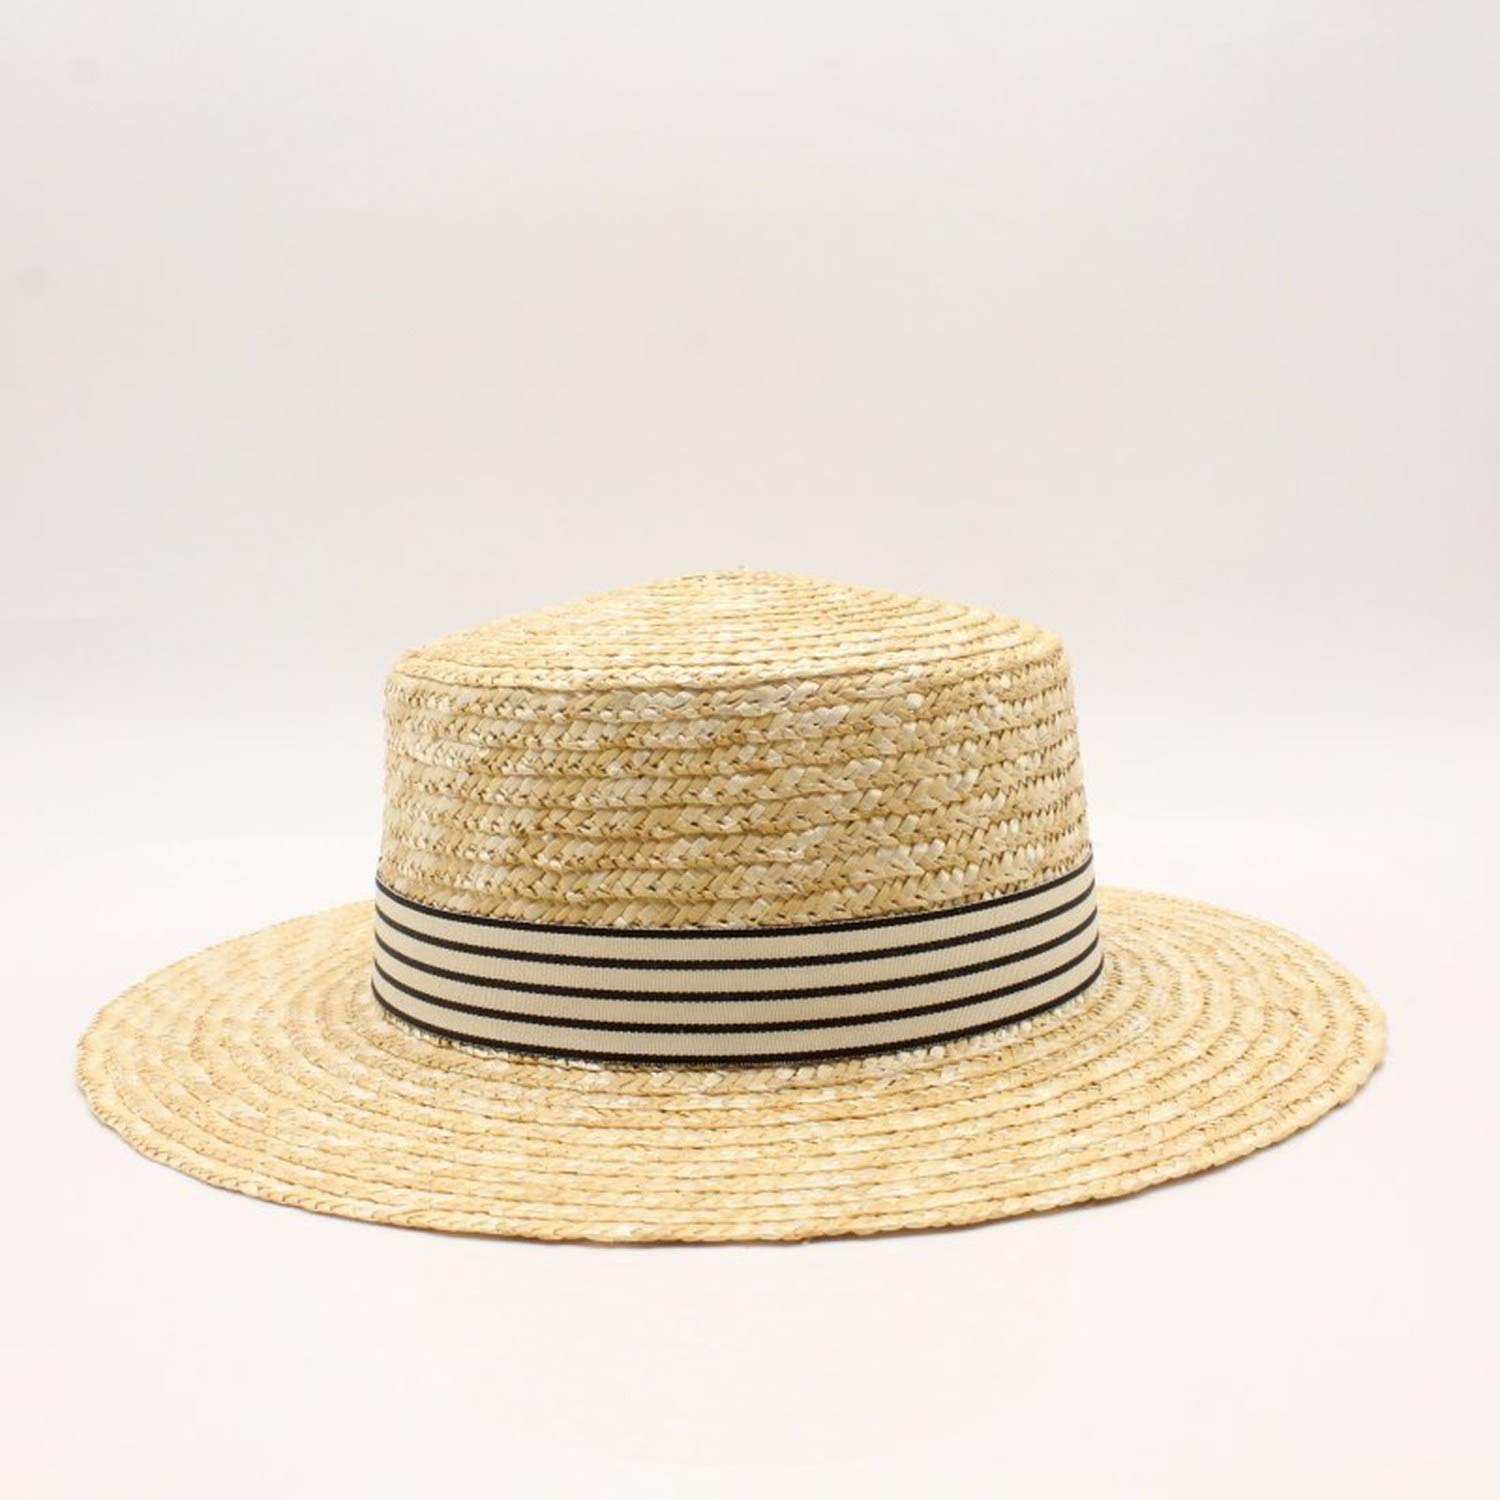 2019 Women Natural Wheat Hat Tie 10Cm Boater Hat Derby Beach Sun Hat Cap Lady Summer Wide Uv Protect Hats